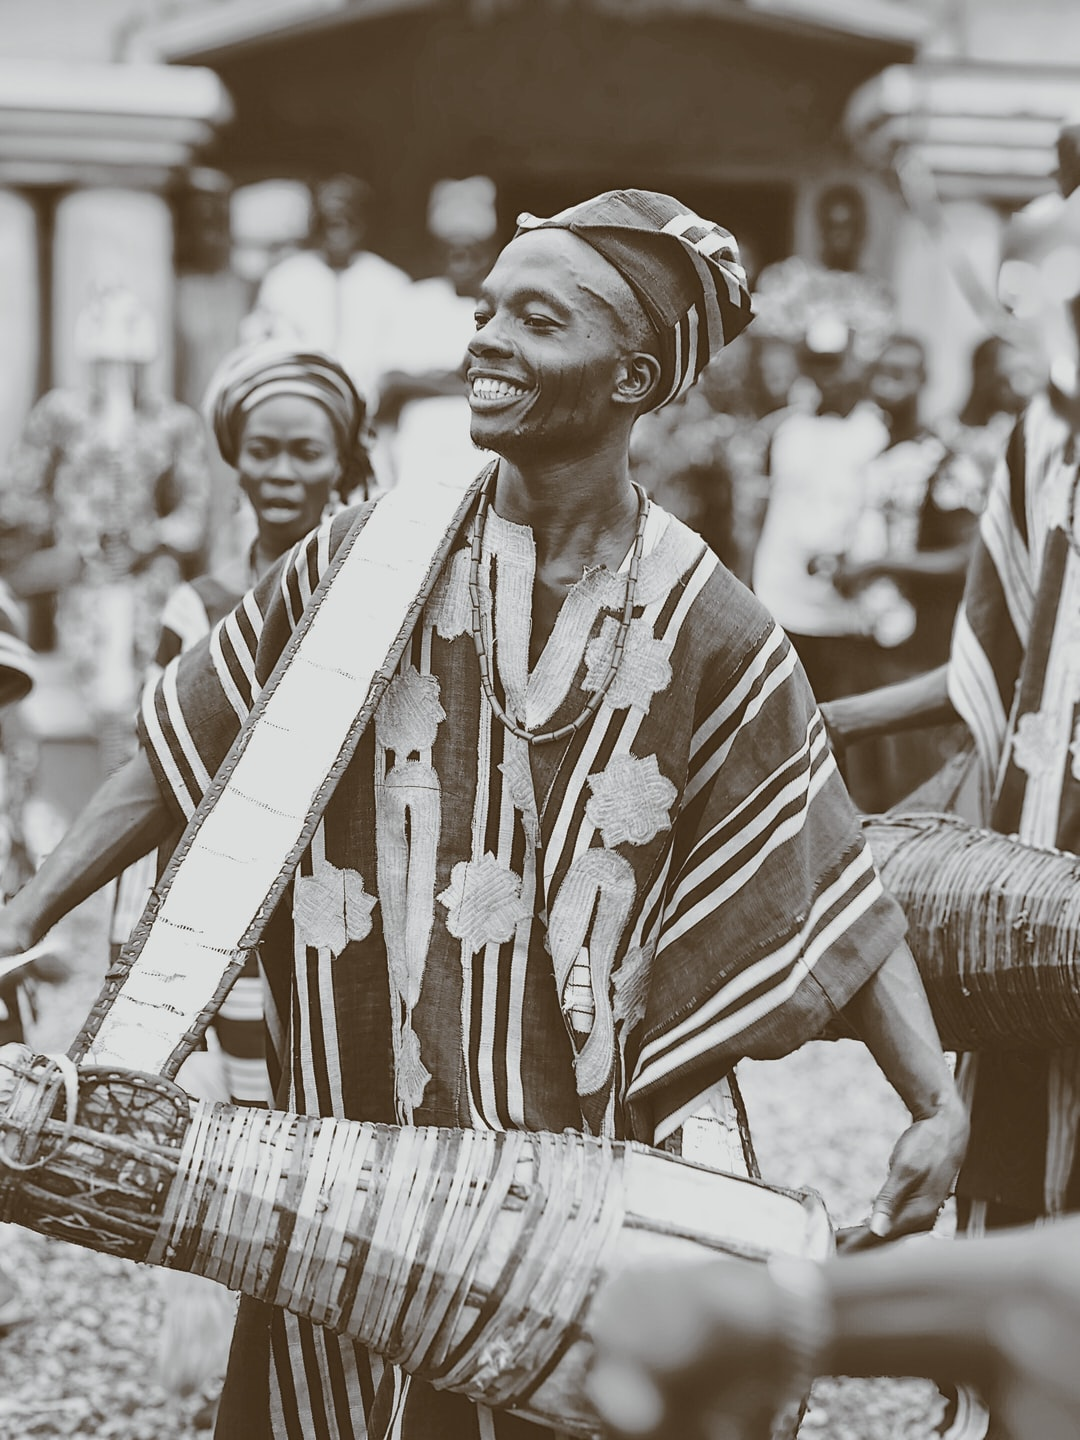 Couple of weeks back , I took a trip down to my village , I have only been there just three times but thins time around I went for a funeral.